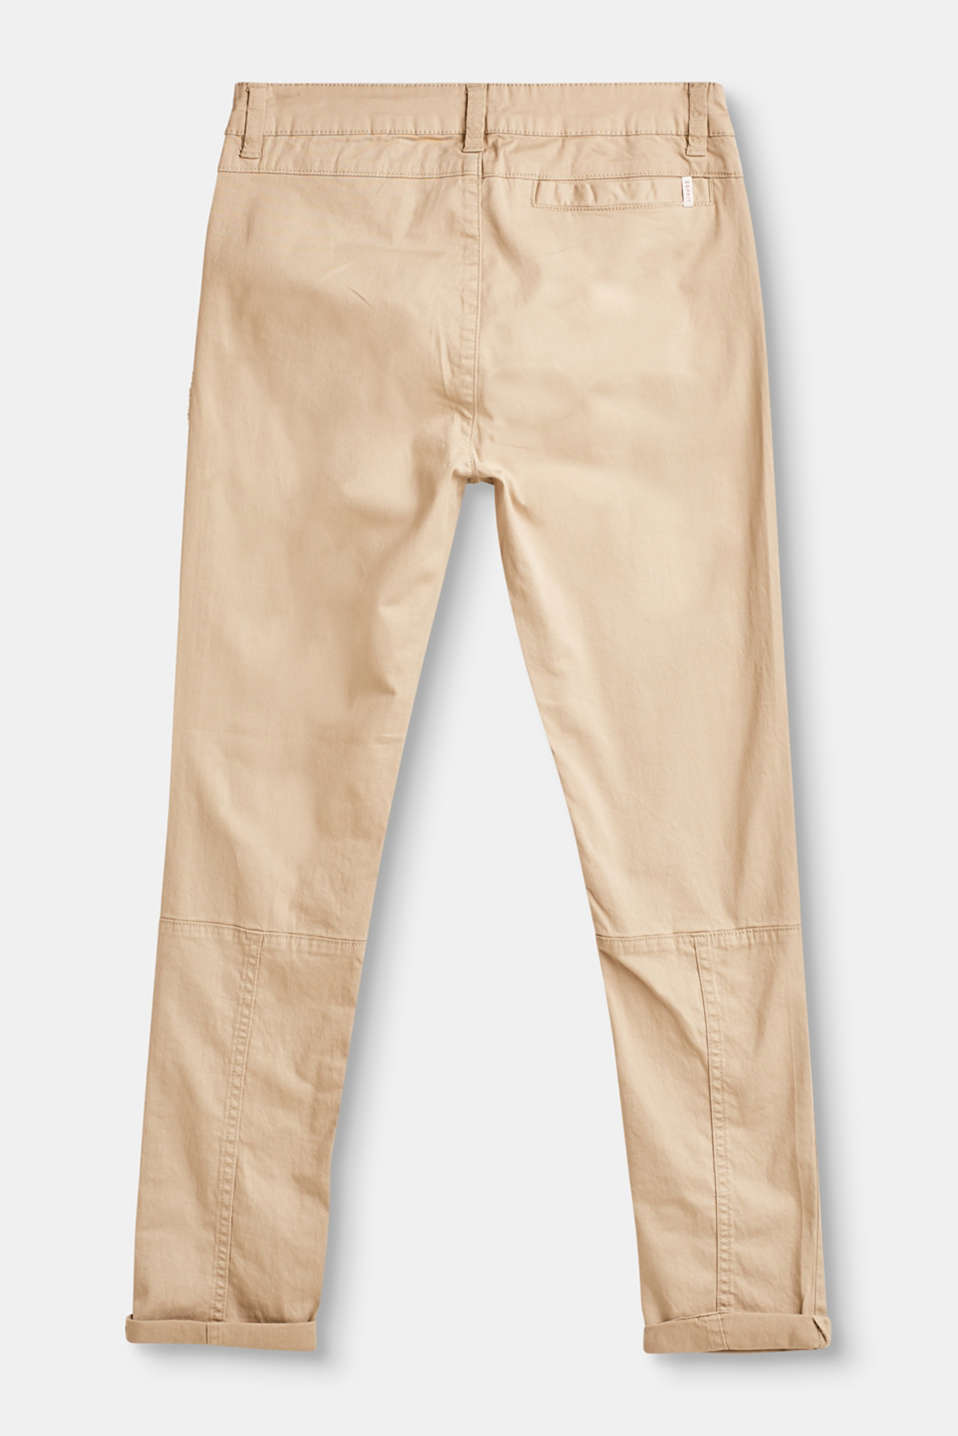 Casual chinos with adjustable waistband, 100% cotton